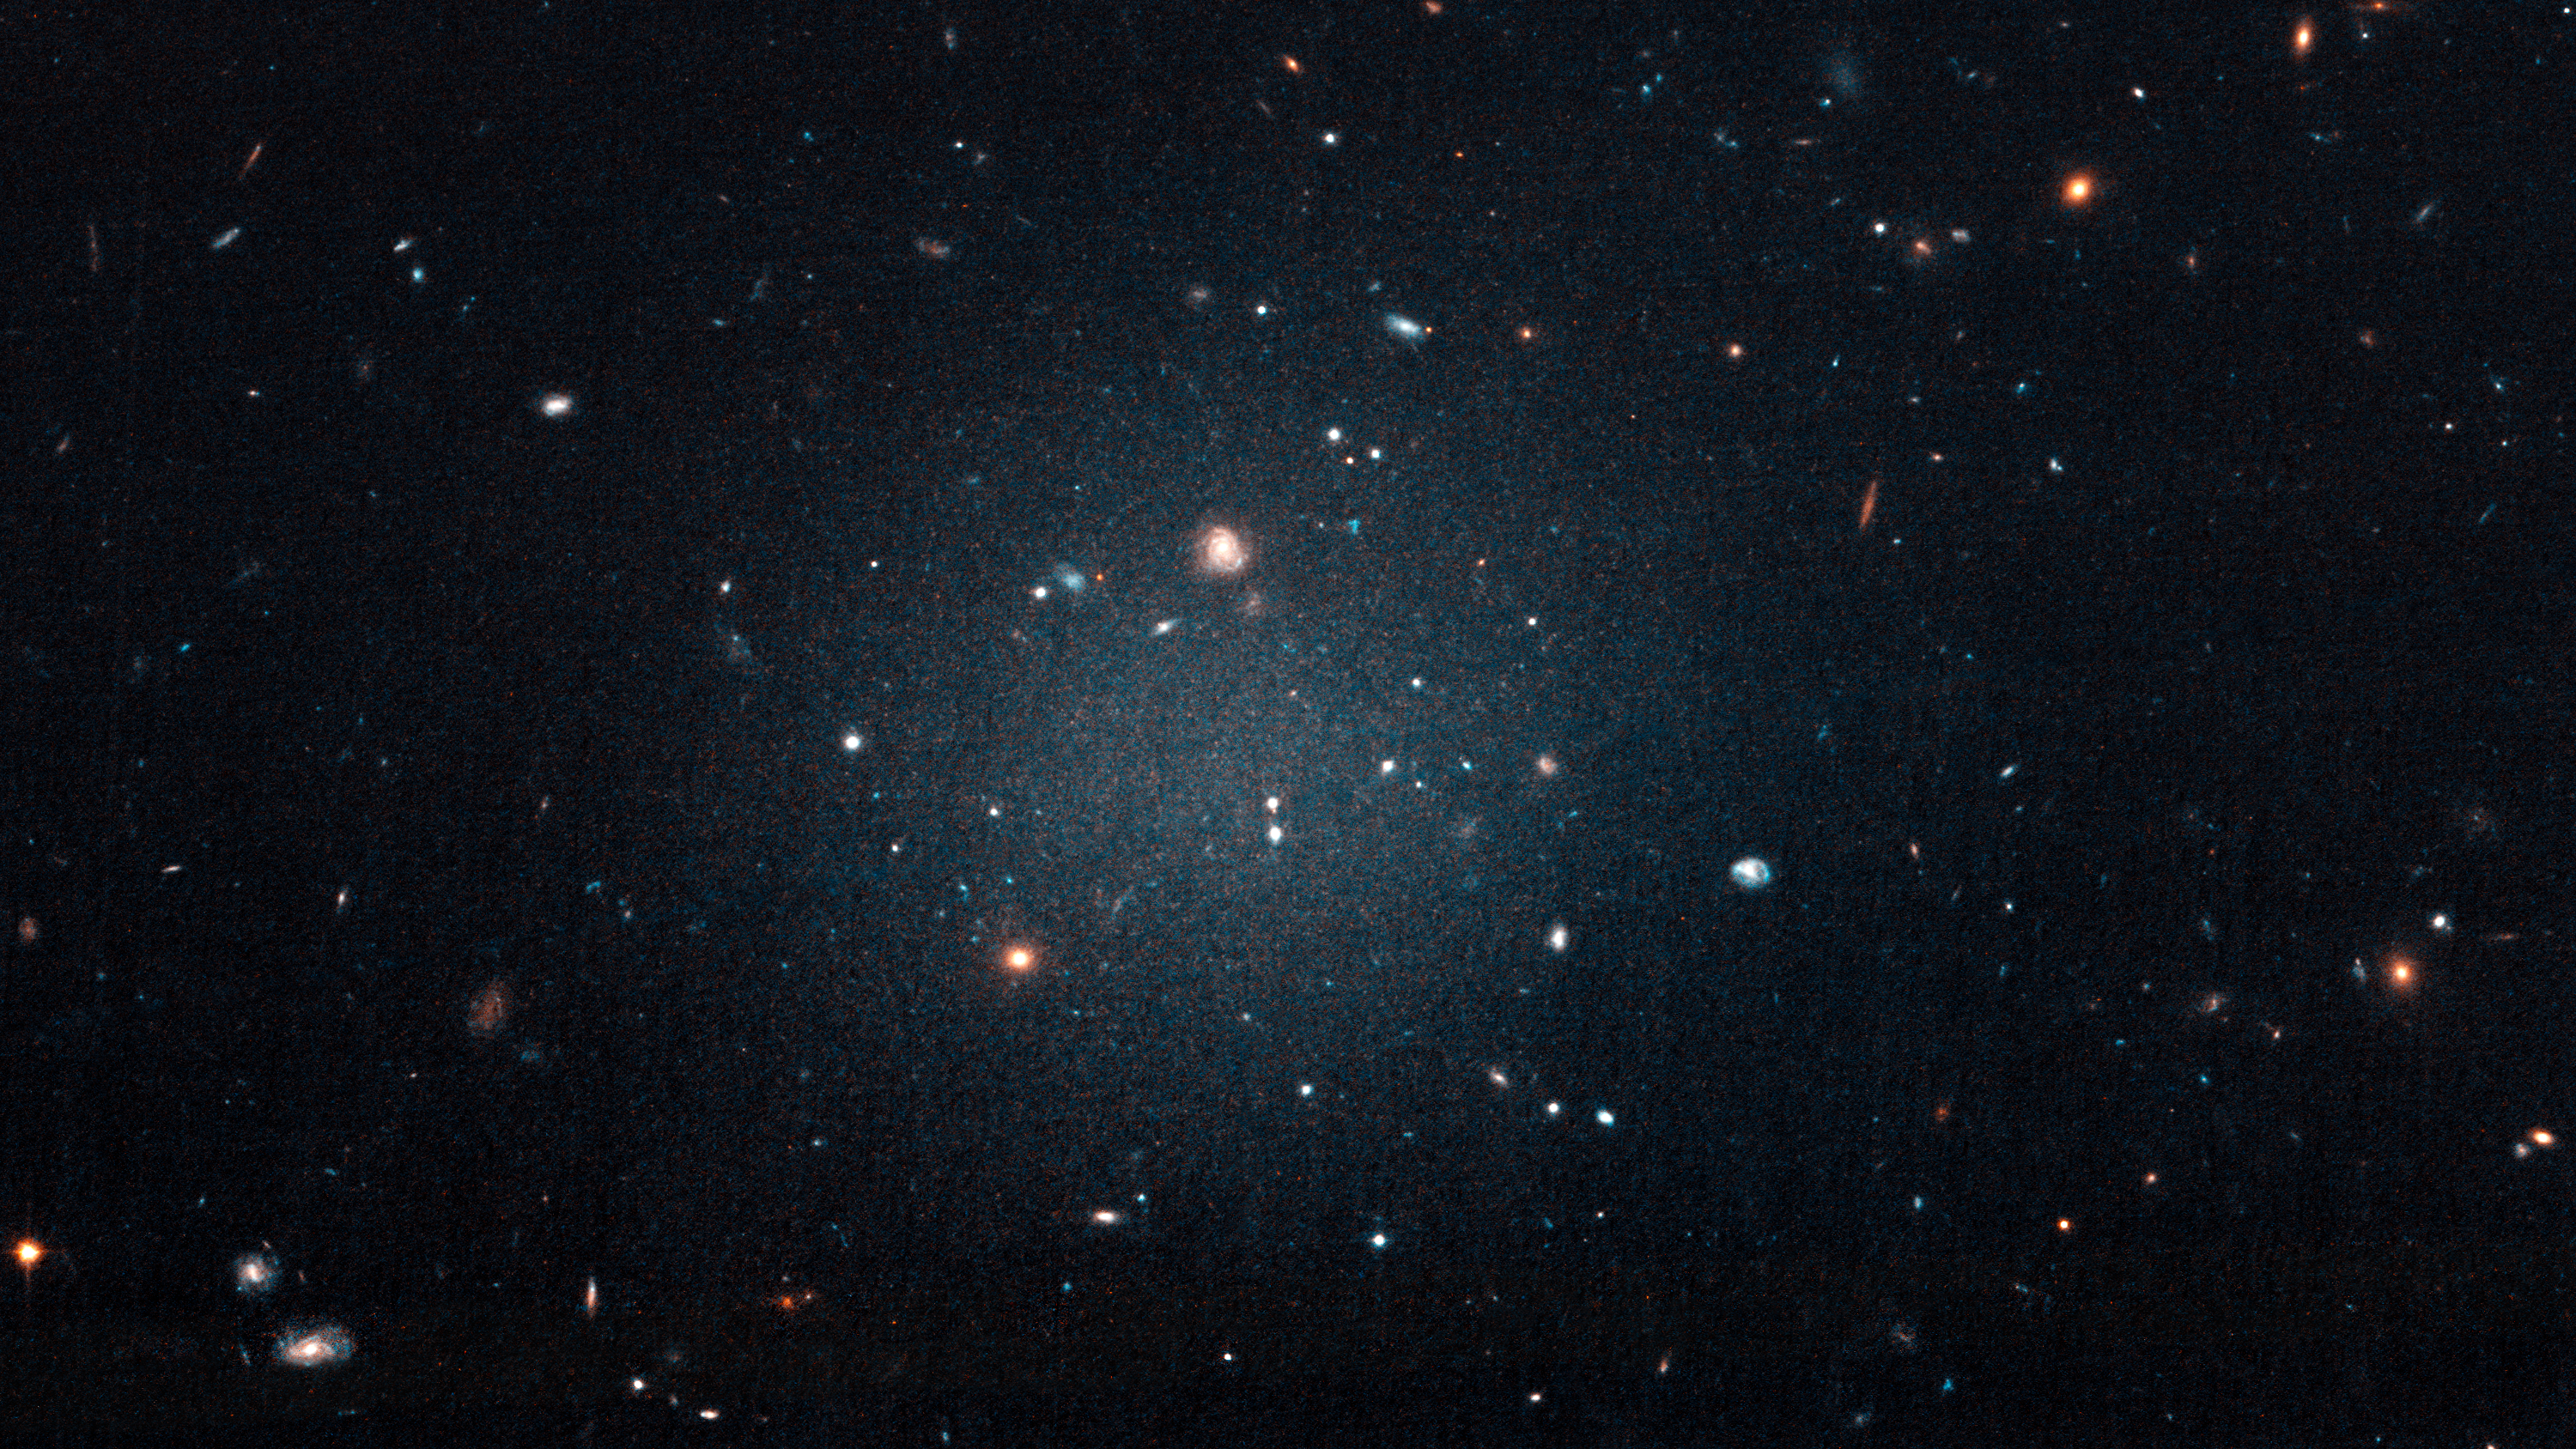 A Ghostly Galaxy's Lack of Dark Matter